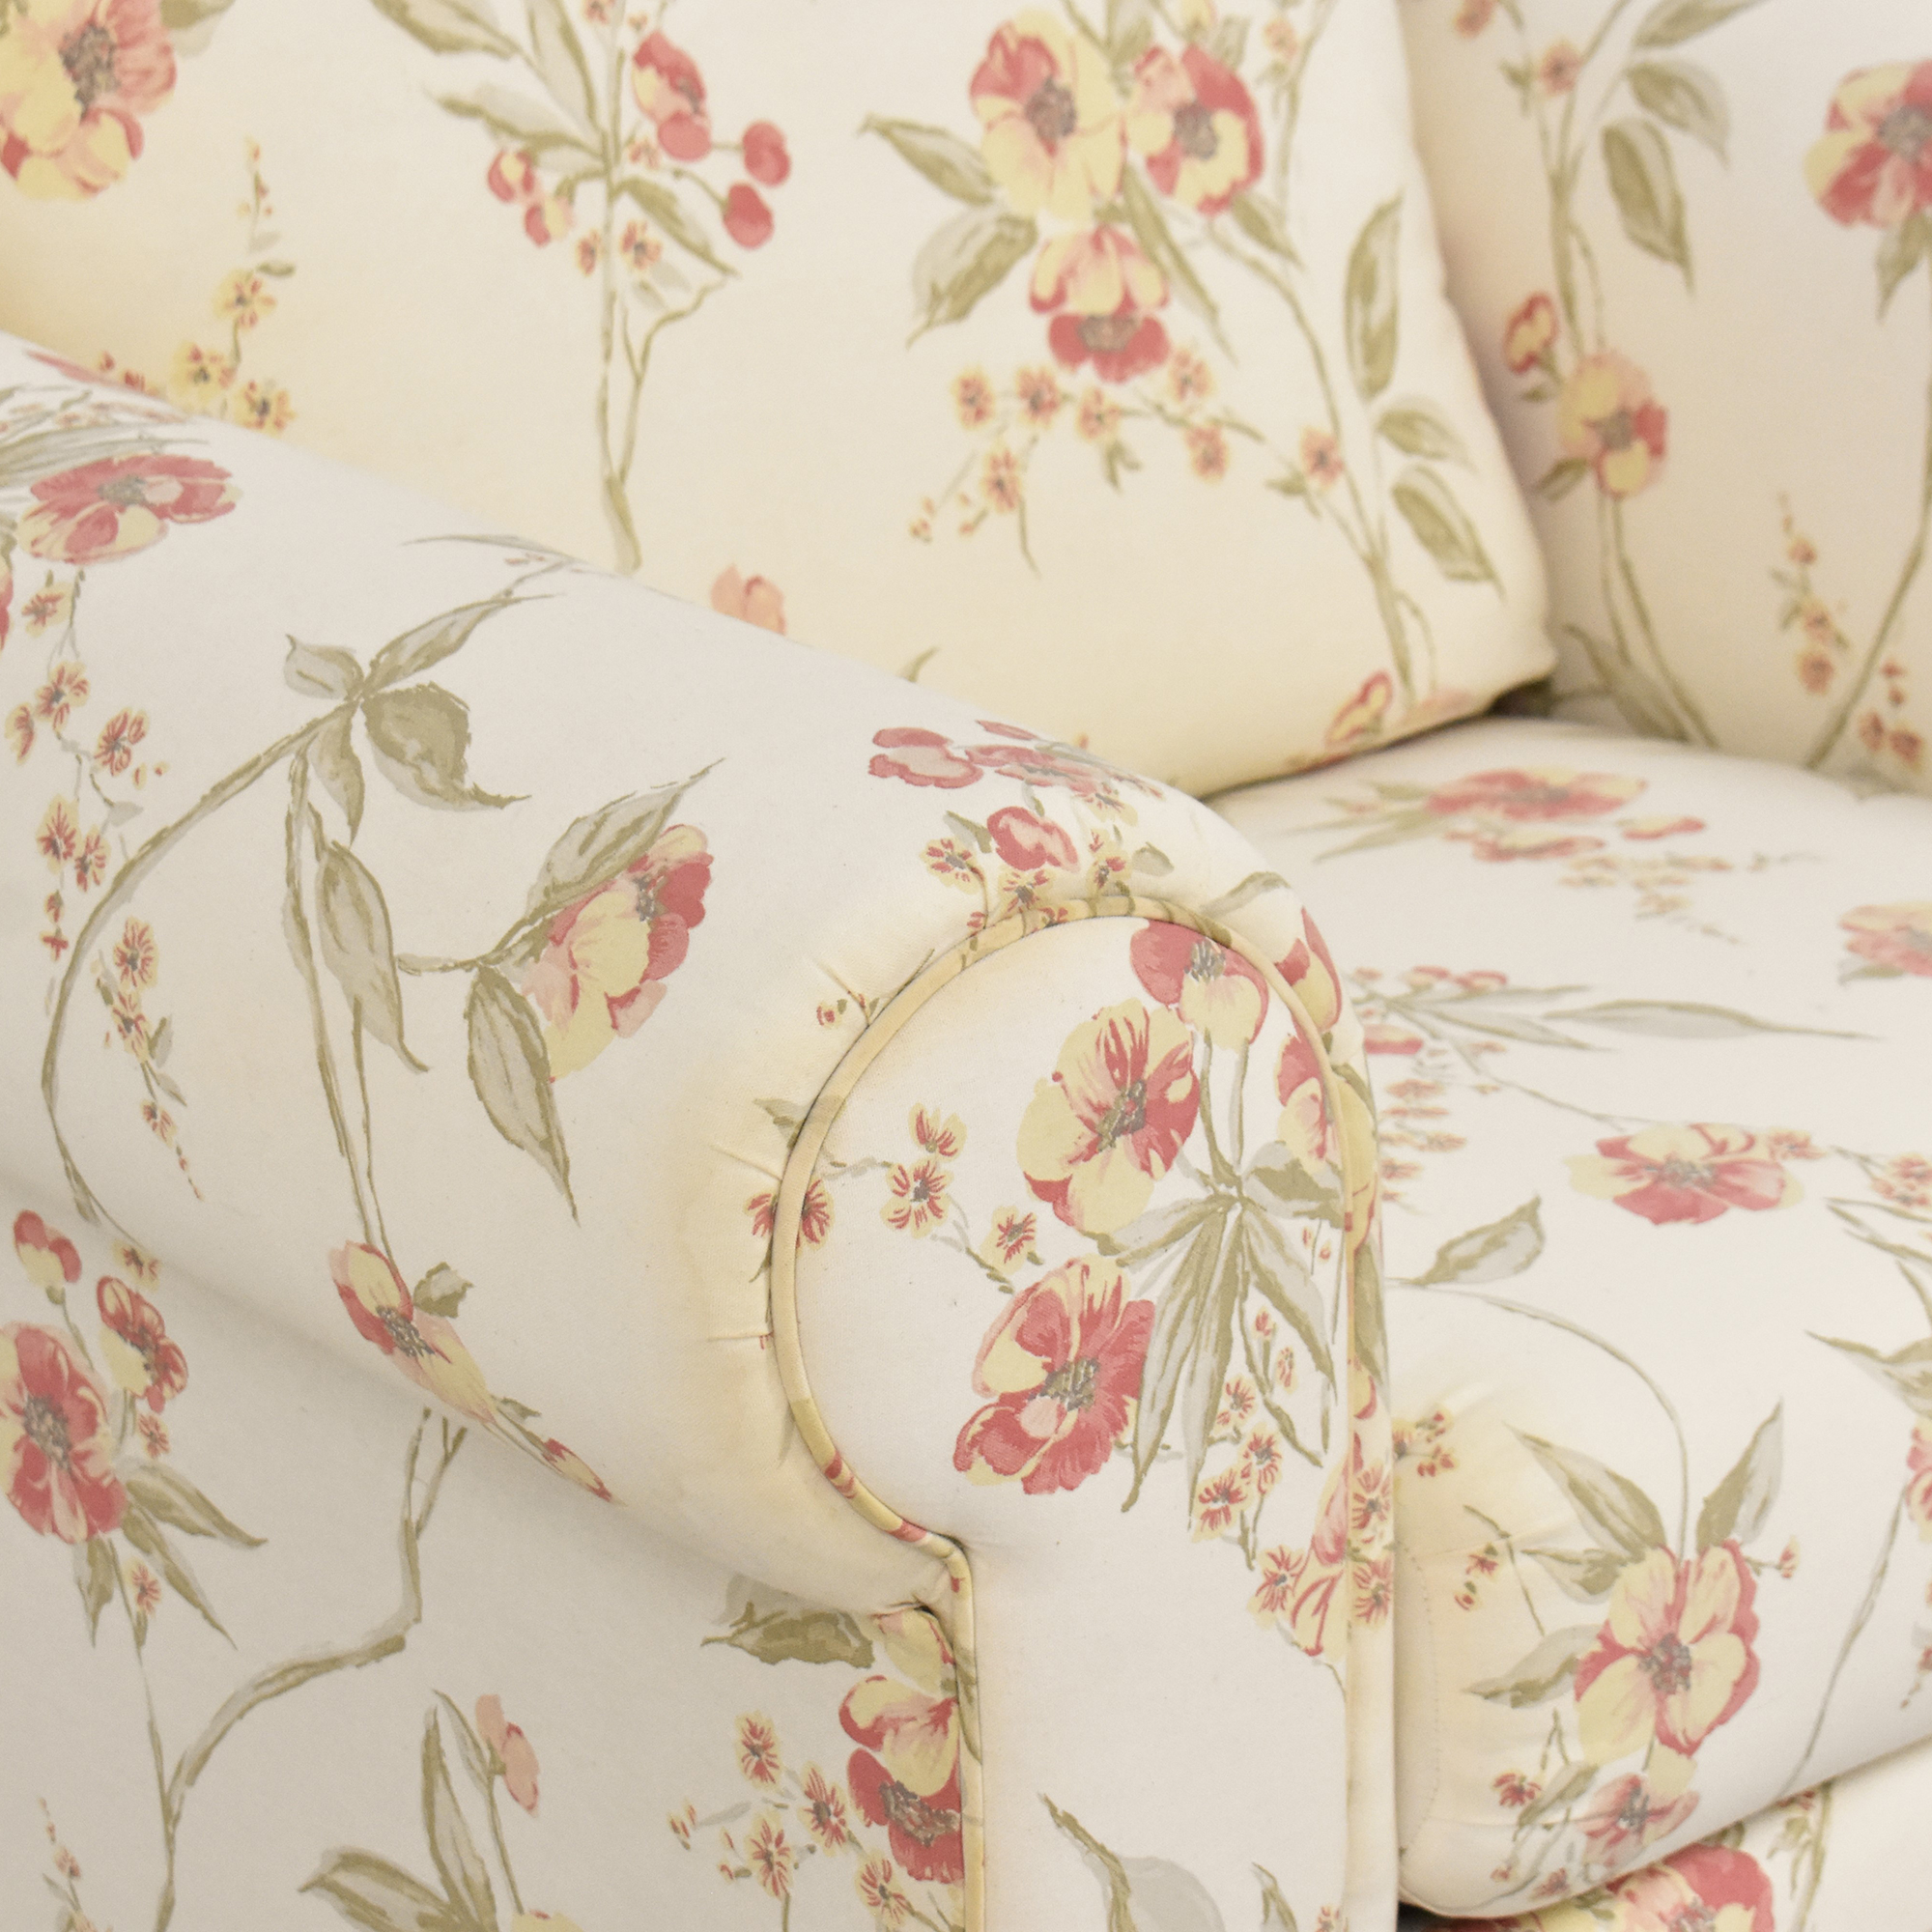 Ellis Home Furnishings Ellis Home Furnishings Floral Accent Chair for sale